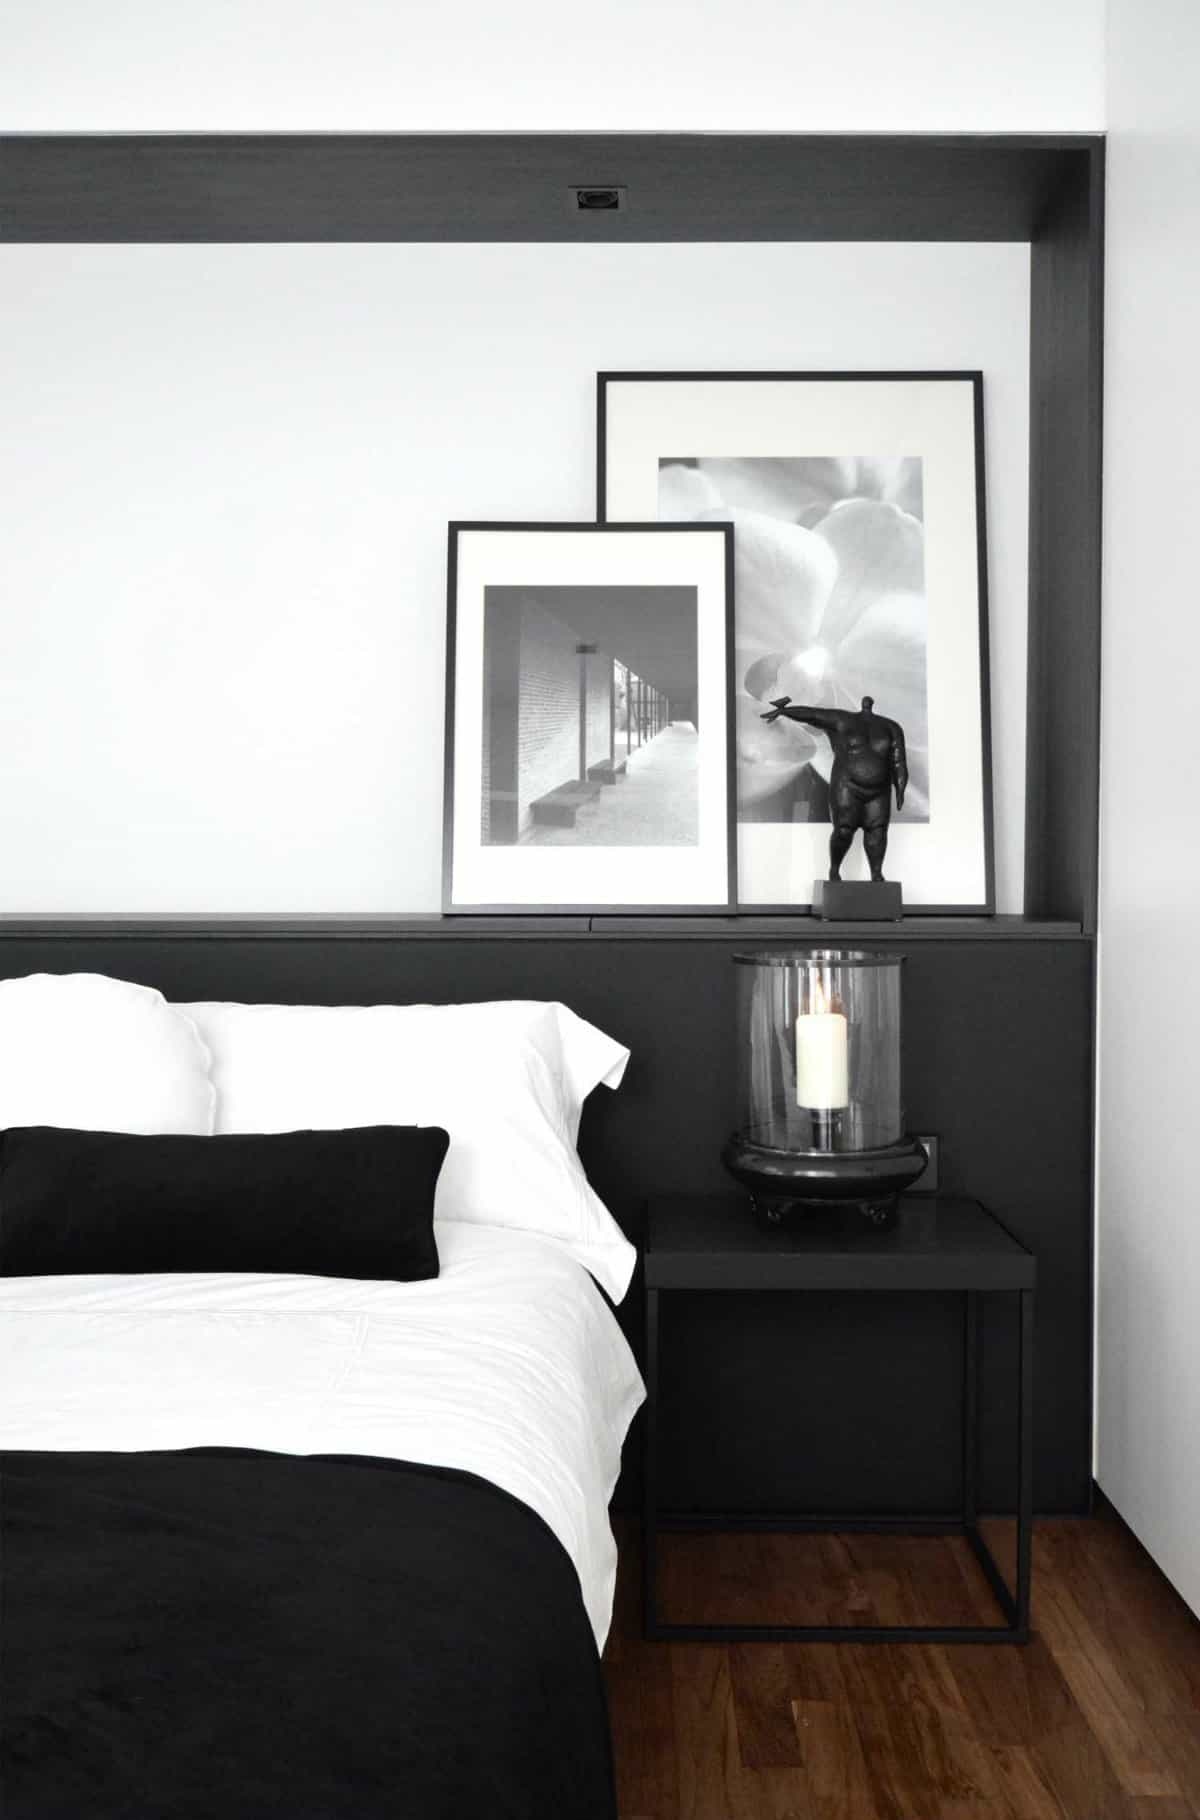 Minimalist bedroom inspiration my style vita for Minimalist bedroom ideas